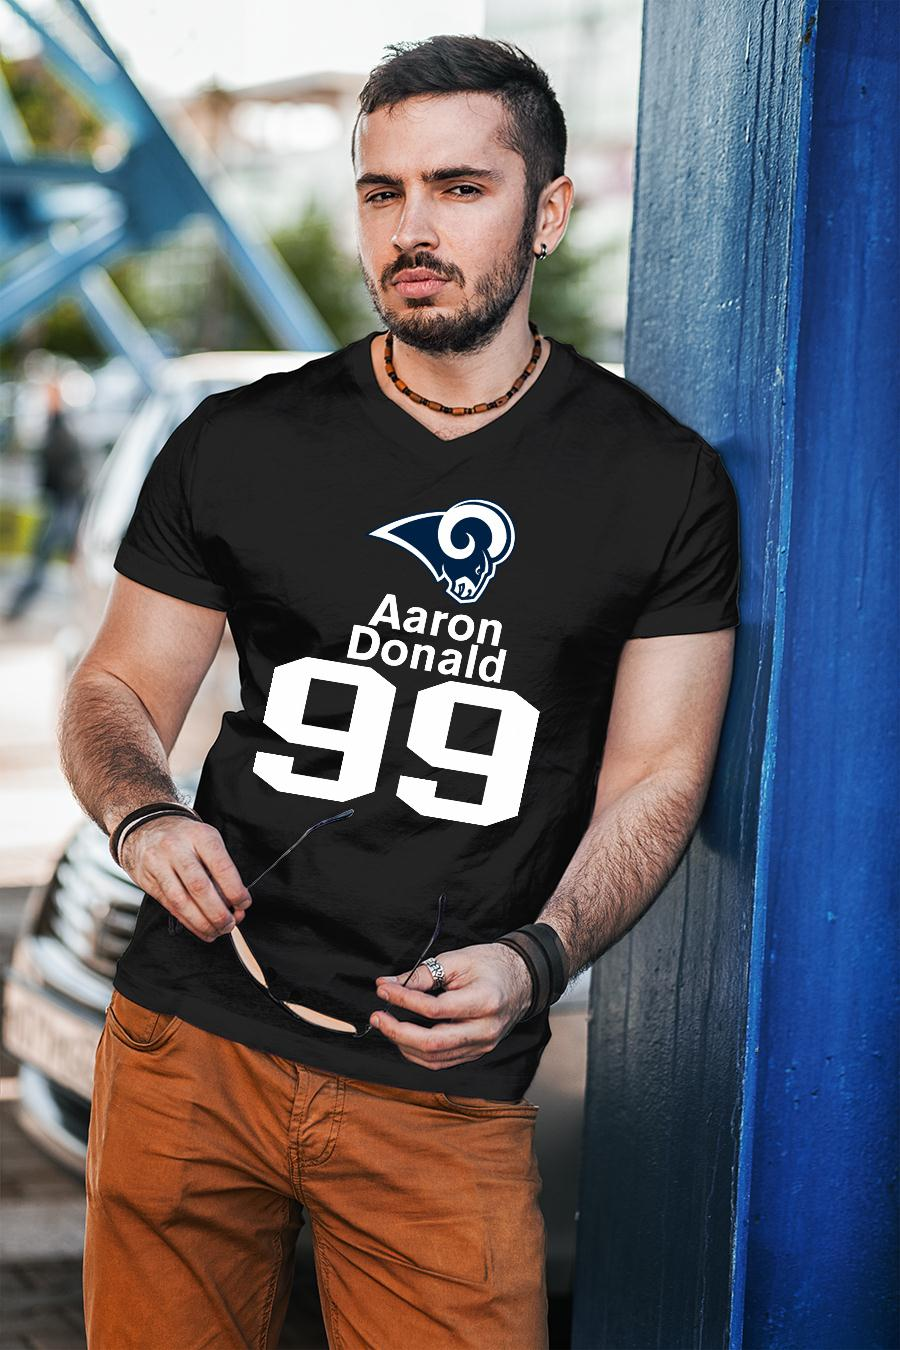 Los Angeles Rams Aaron Donald No shirt unisex